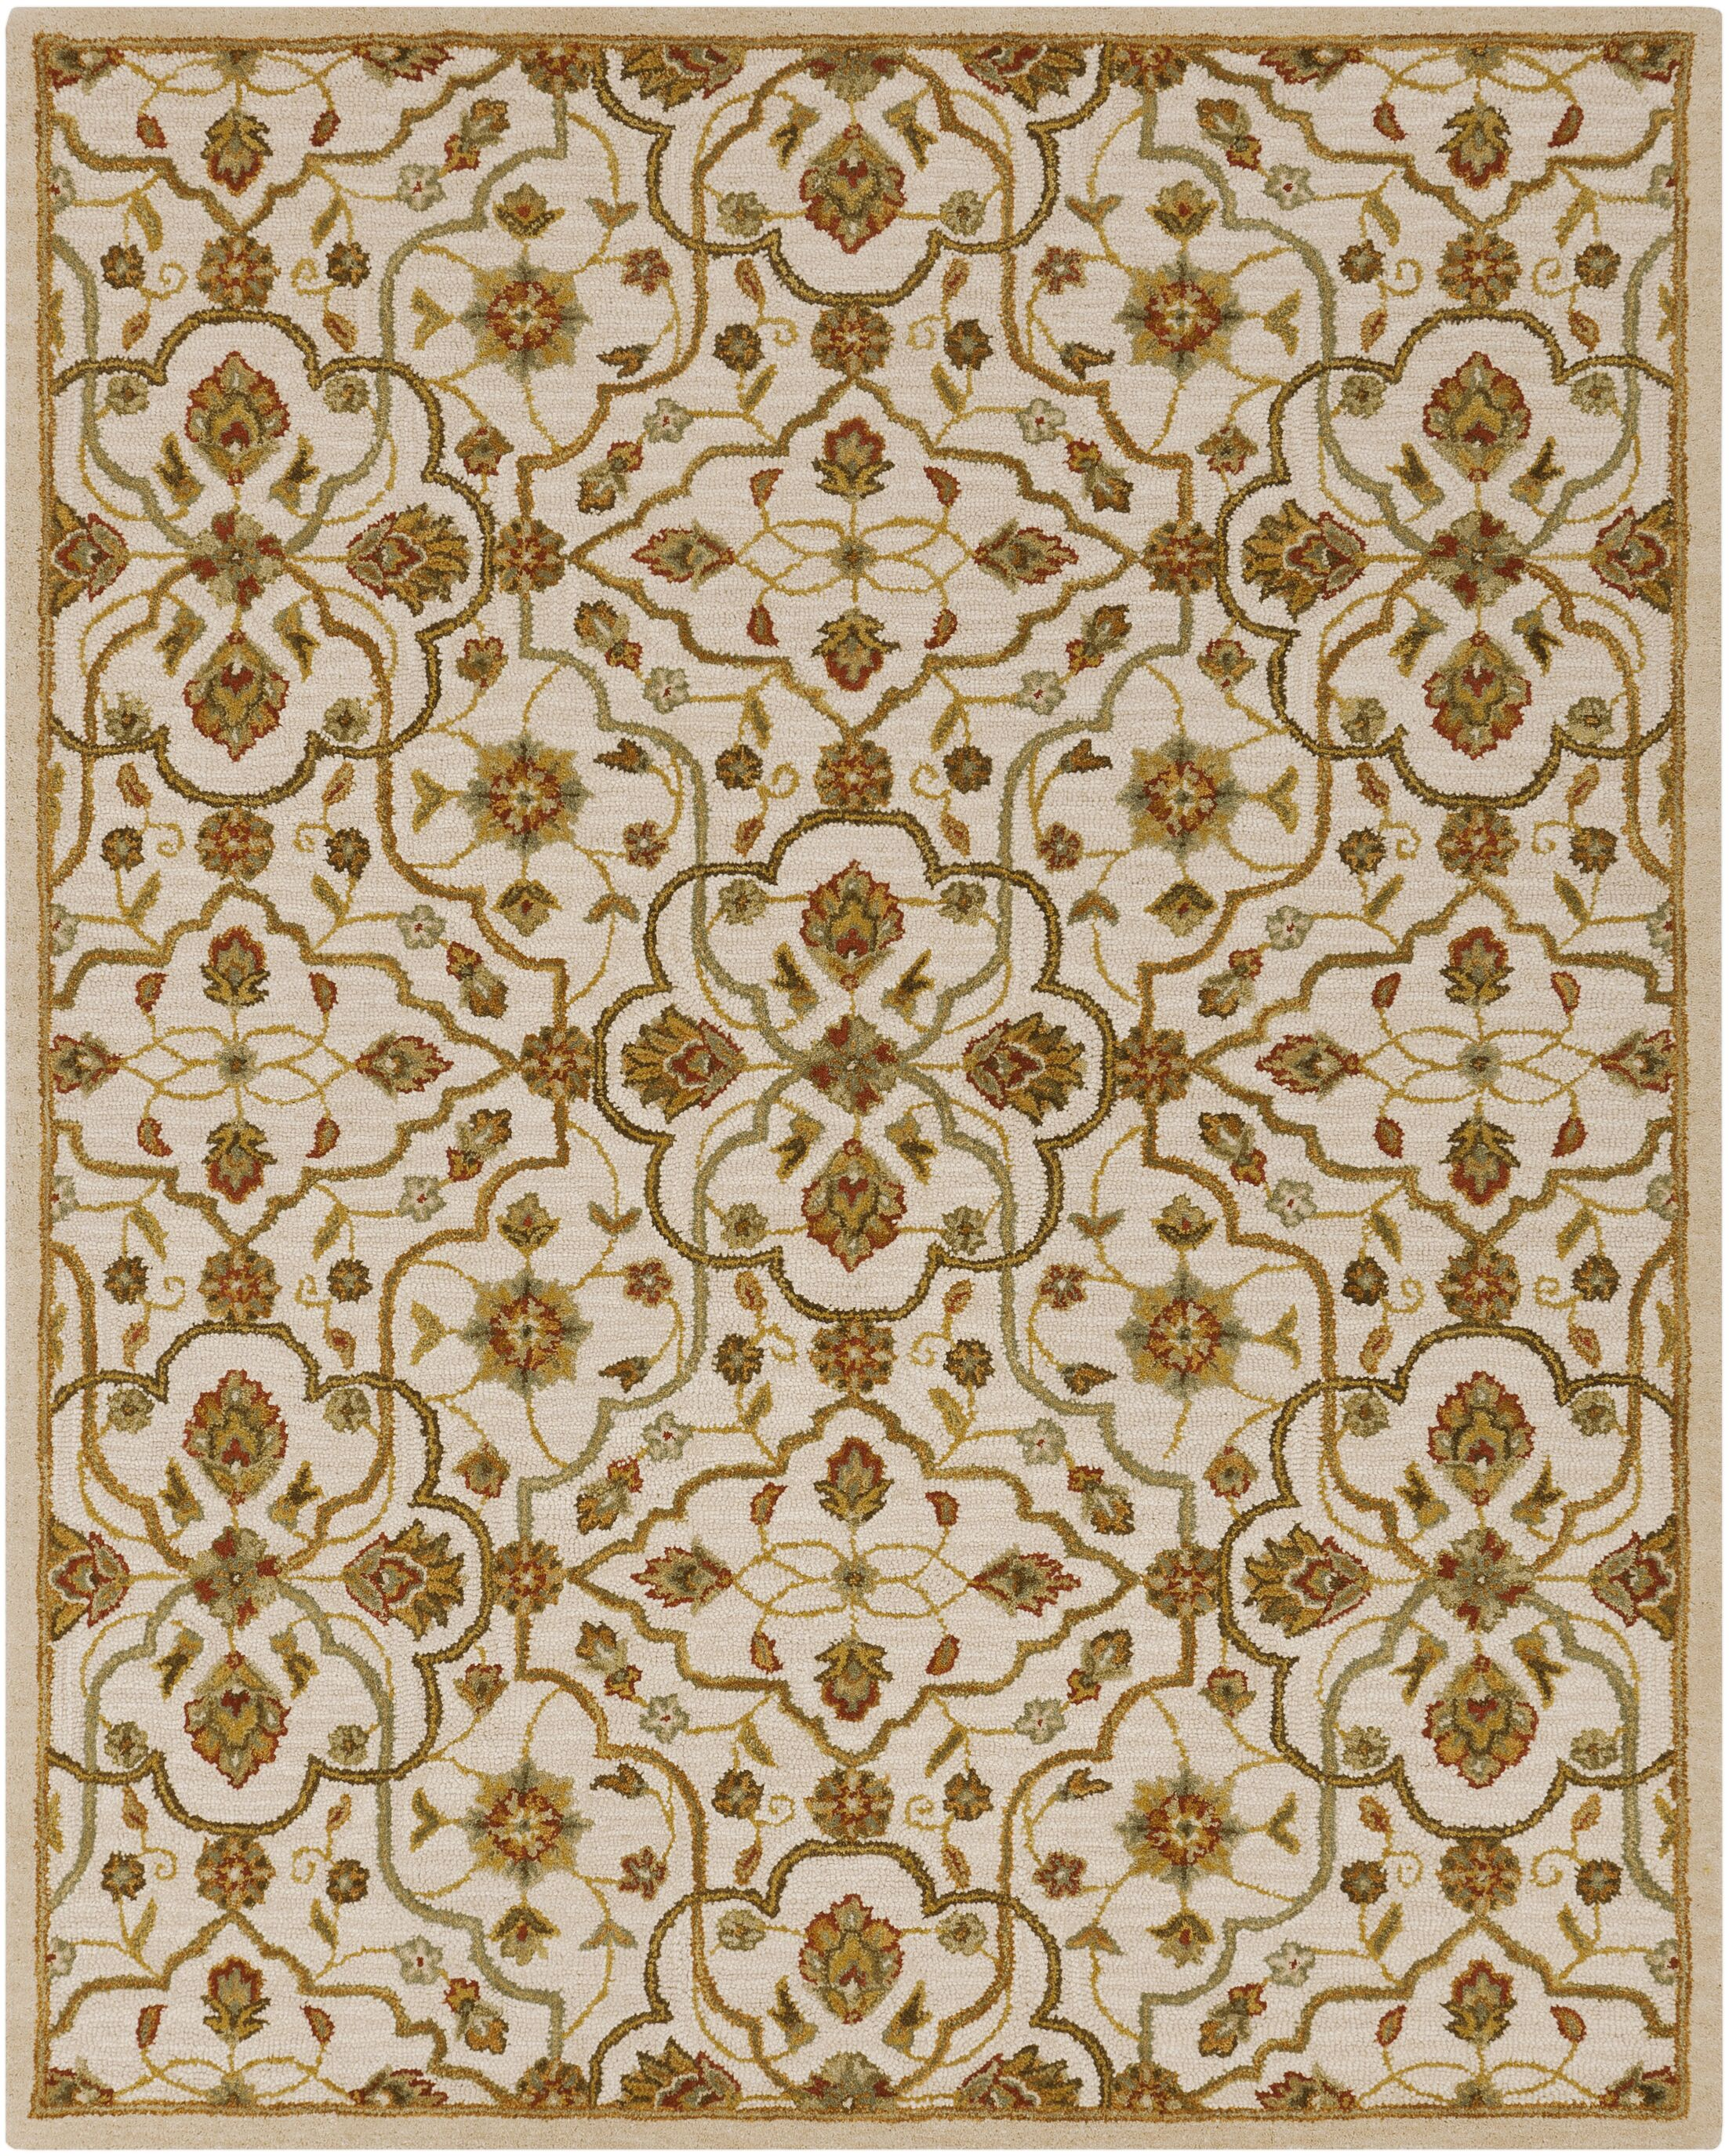 Burwood Parchment Rug Rug Size: Rectangle 8' x 10'